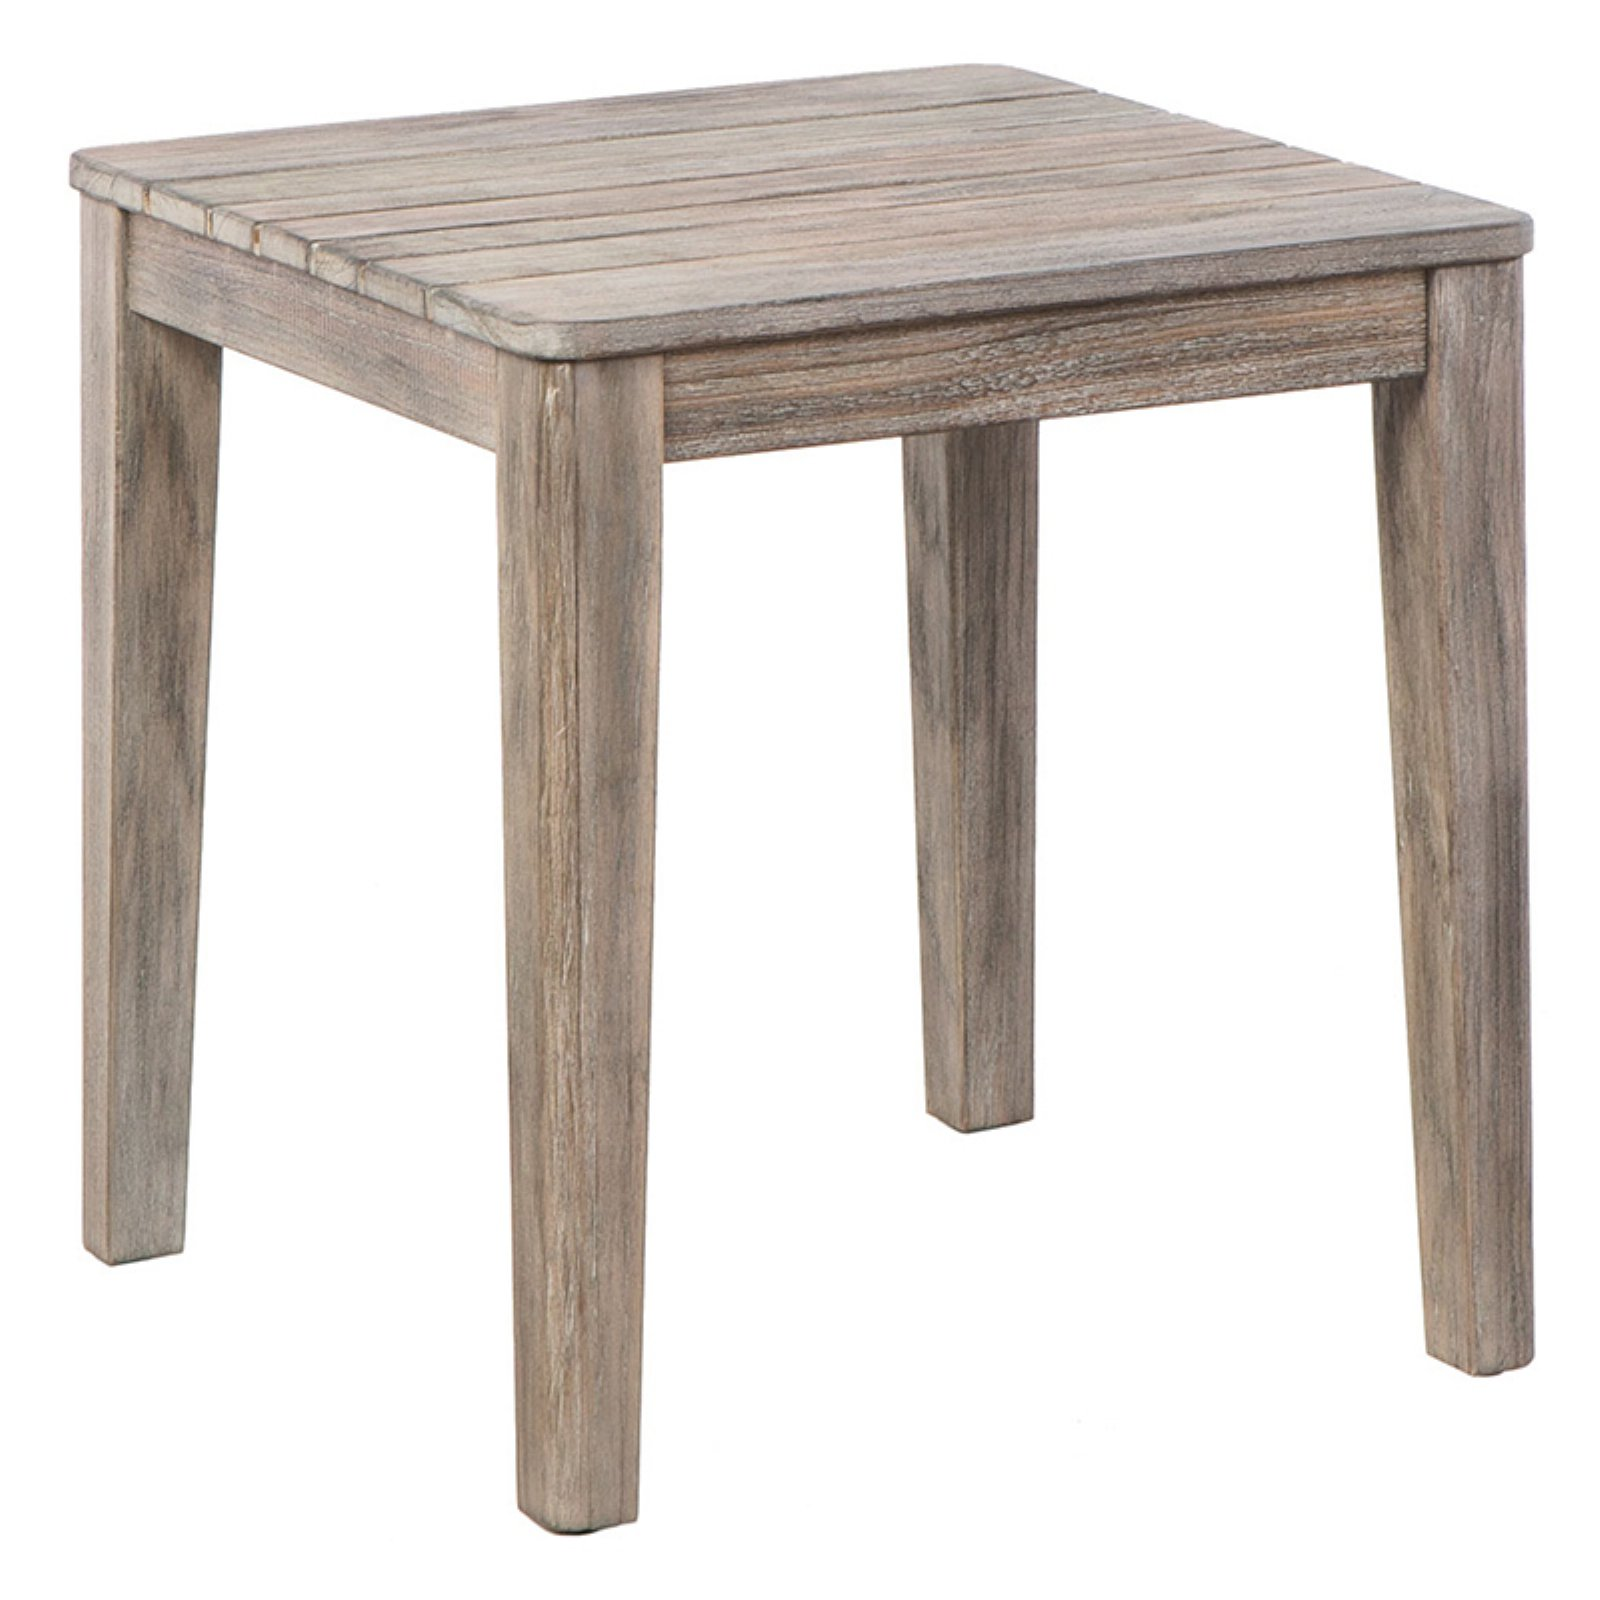 Alfresco Home Cornwall Wood Patio End Table